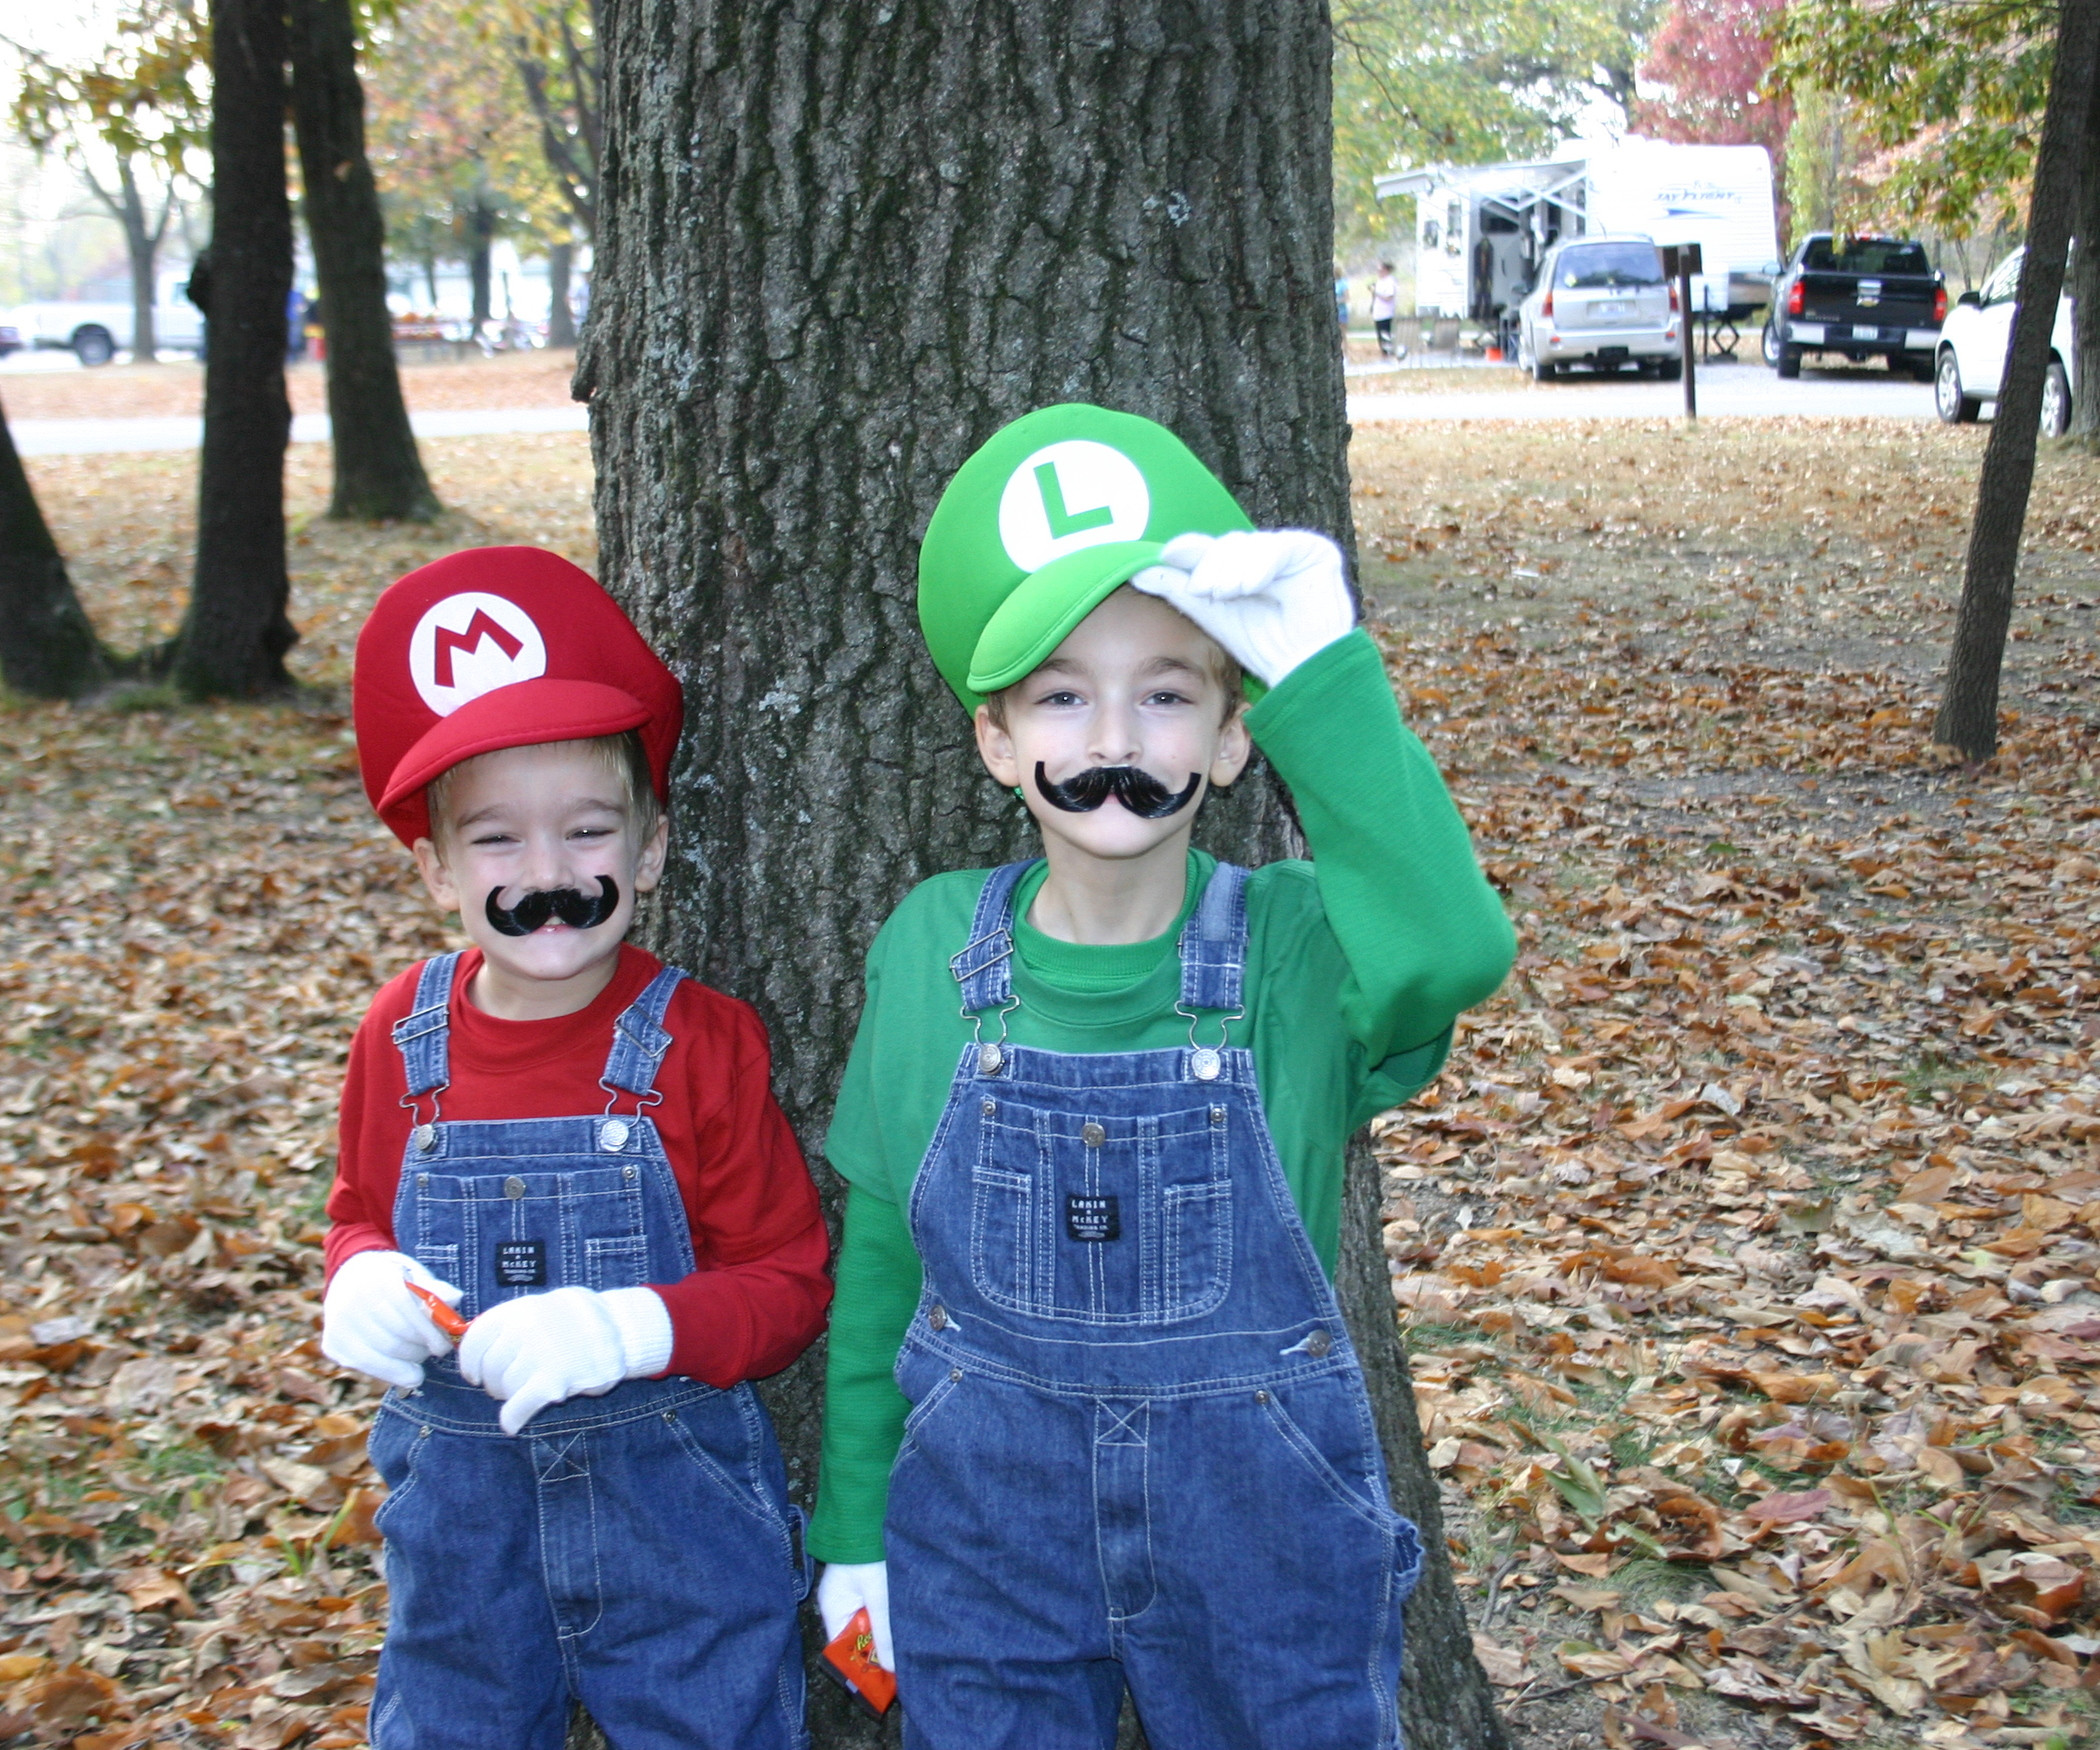 Best ideas about Super Mario Costume DIY . Save or Pin Mario Bros Costumes With Sound Effects 8 Steps with Now.